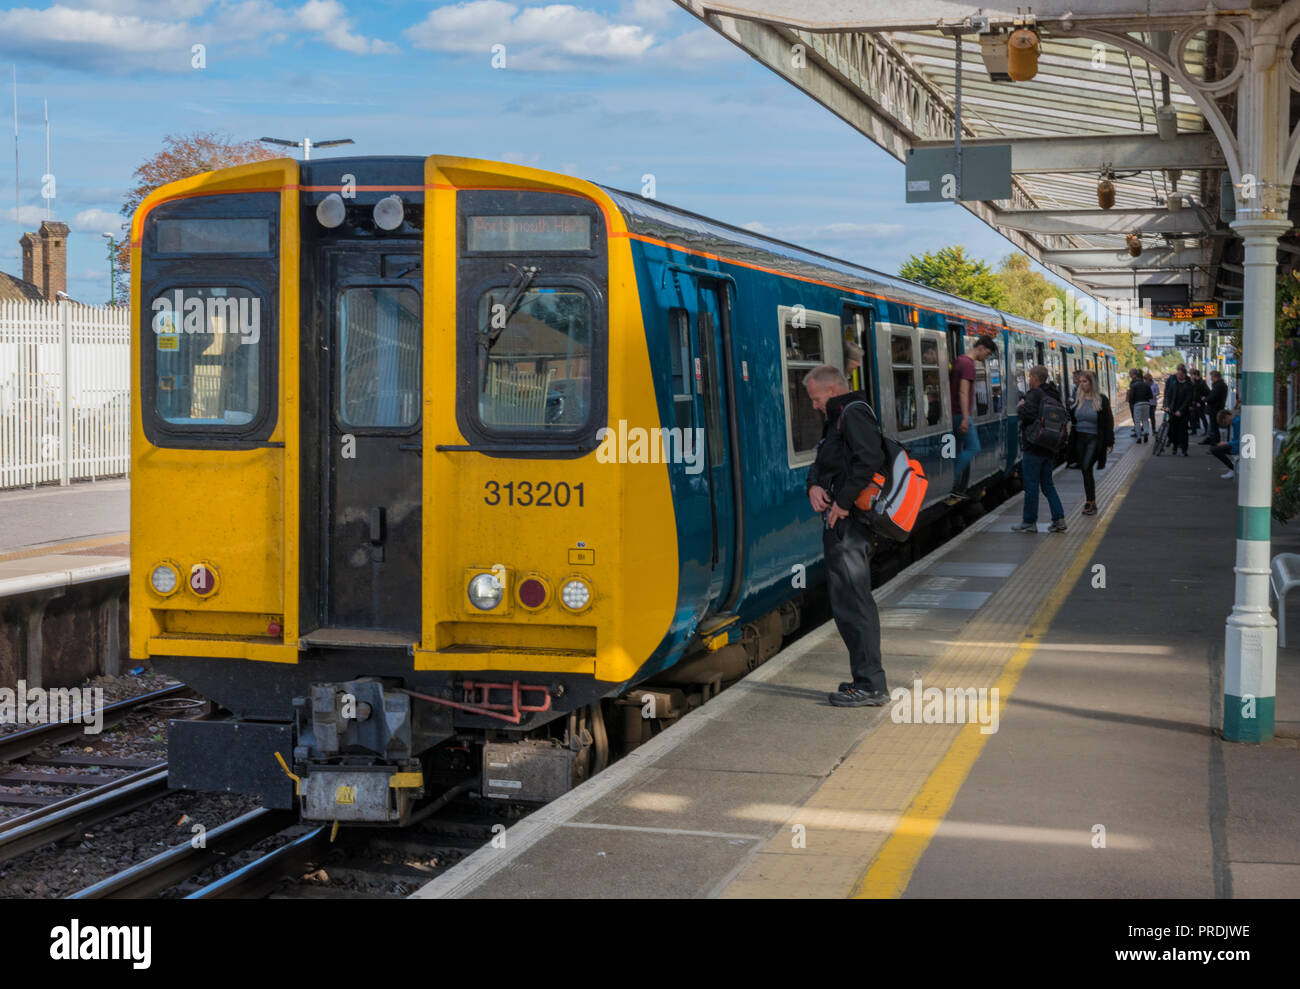 class 313 electric multiple unit train in the platform on the southern railway at barnham, west sussex. - Stock Image